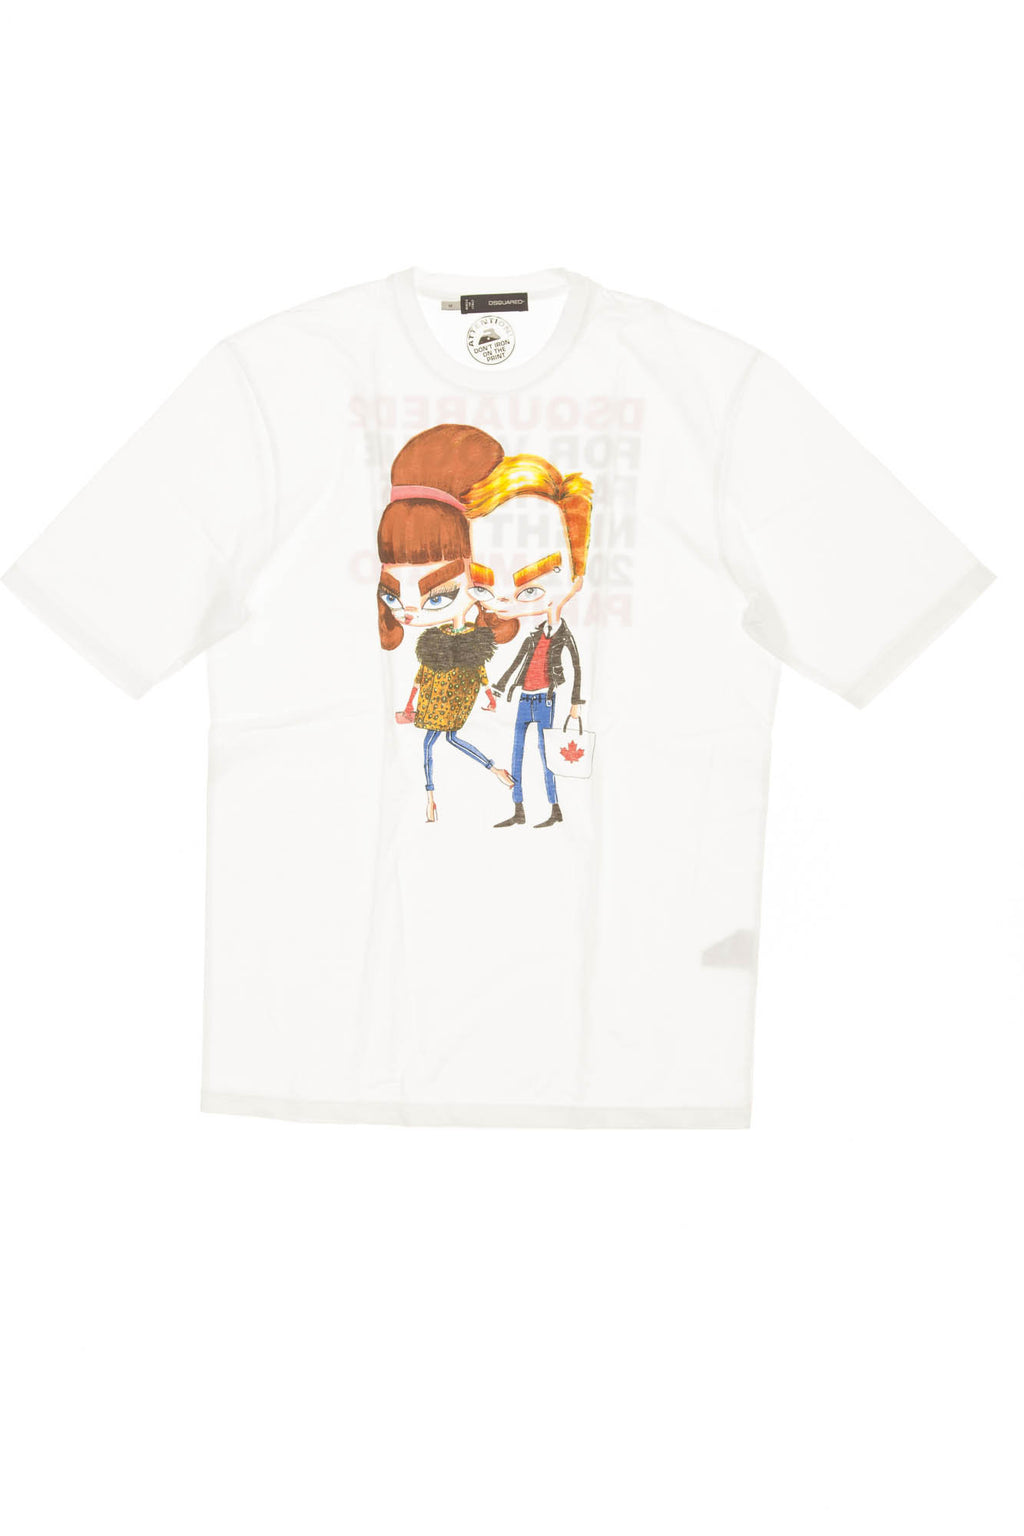 Dsquared2 - White Short Sleeve Cartoon Graphic T Shirt - M